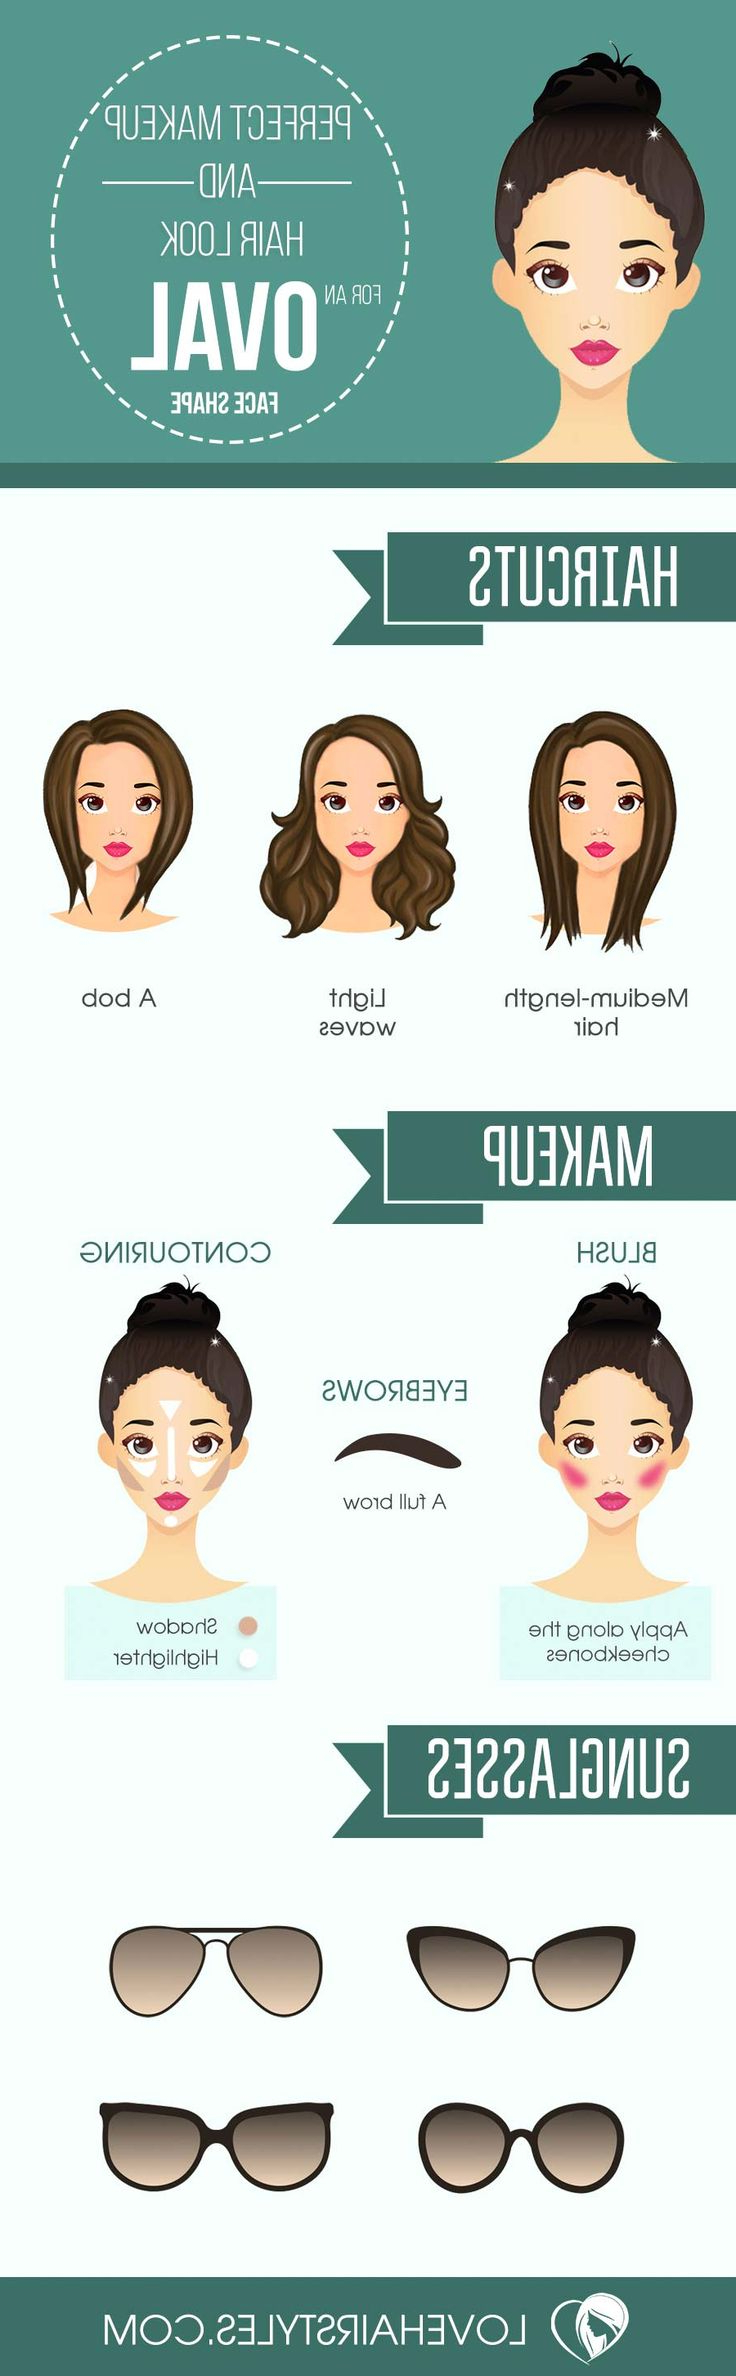 137 Best Hairstyles For Face Shapes Images On Pinterest   Hairstyle Throughout Short Haircuts For Different Face Shapes (View 3 of 25)